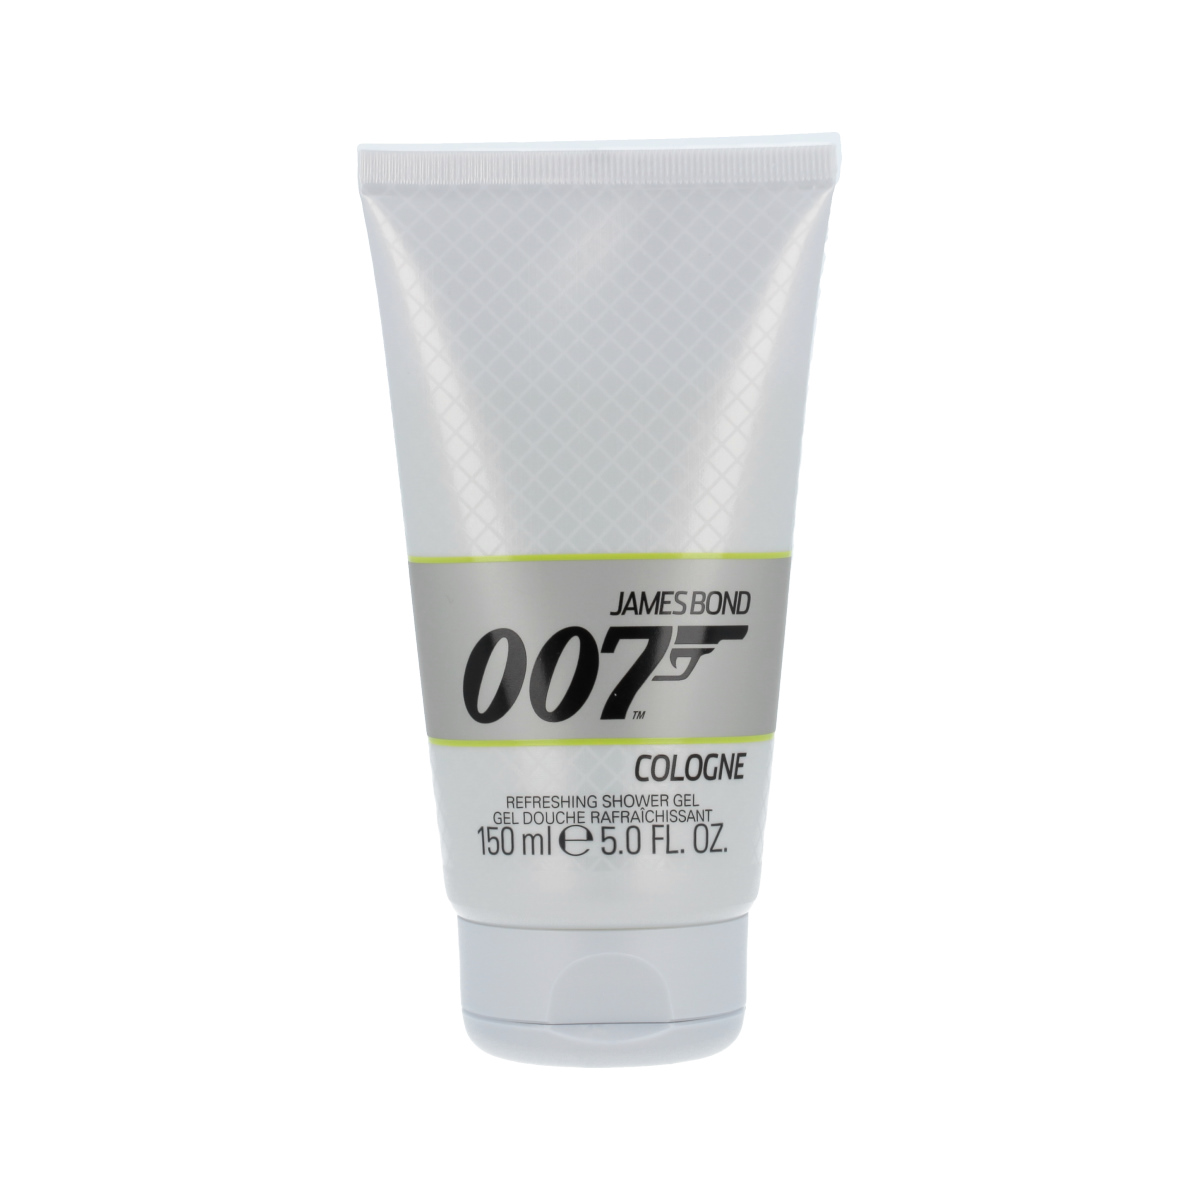 James Bond James Bond 007 Cologne Duschgel 150 ml (man) 12148